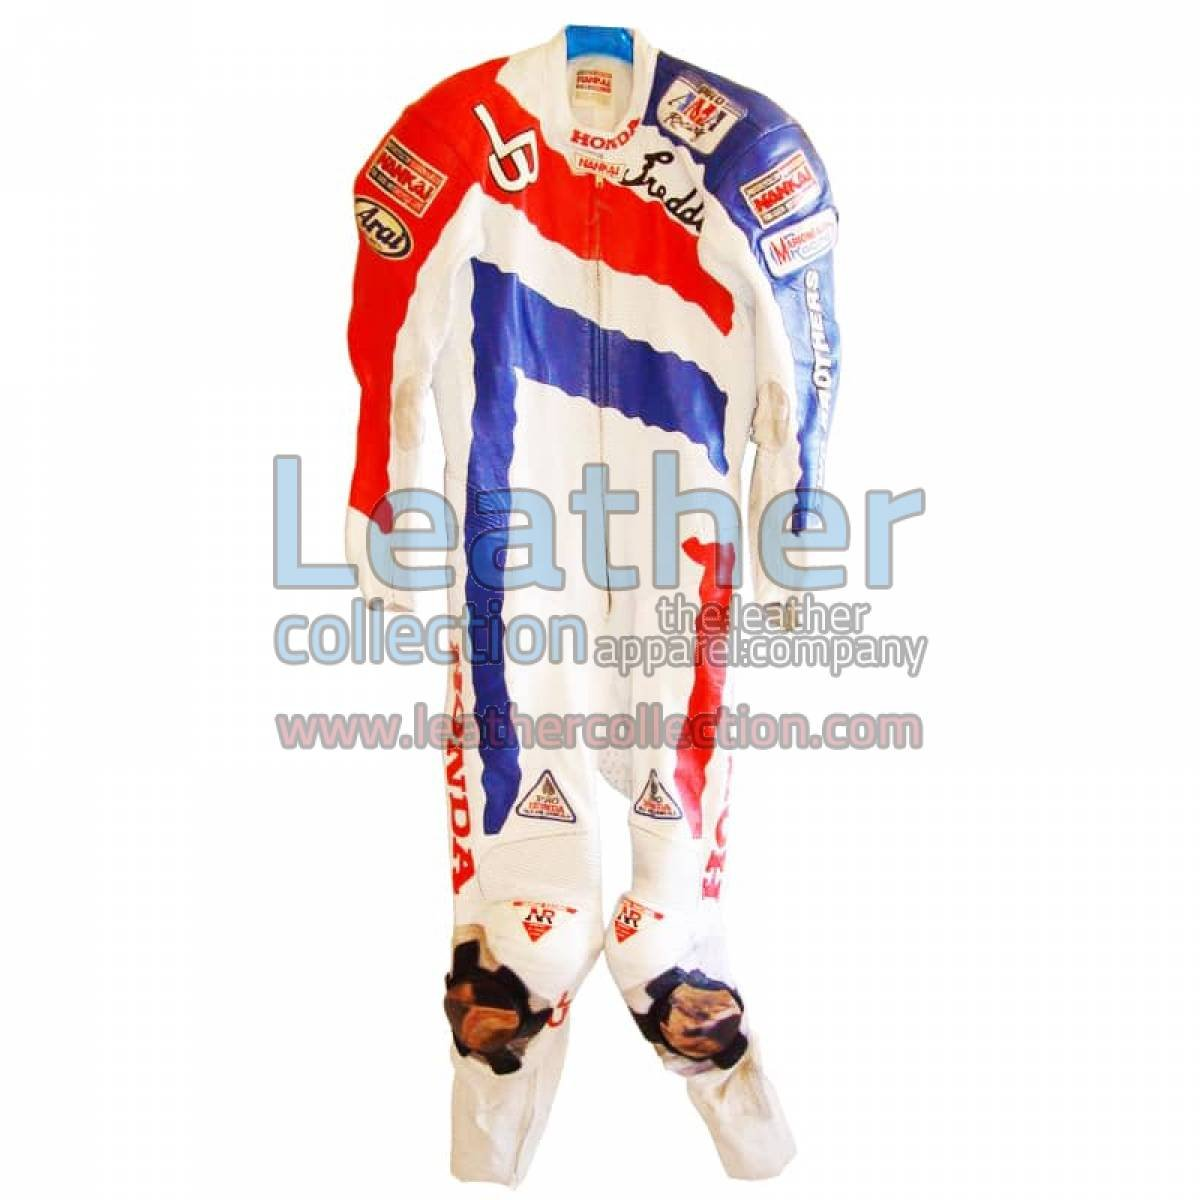 Freddie Spencer Honda Motorcycle AMA 1991 Leathers